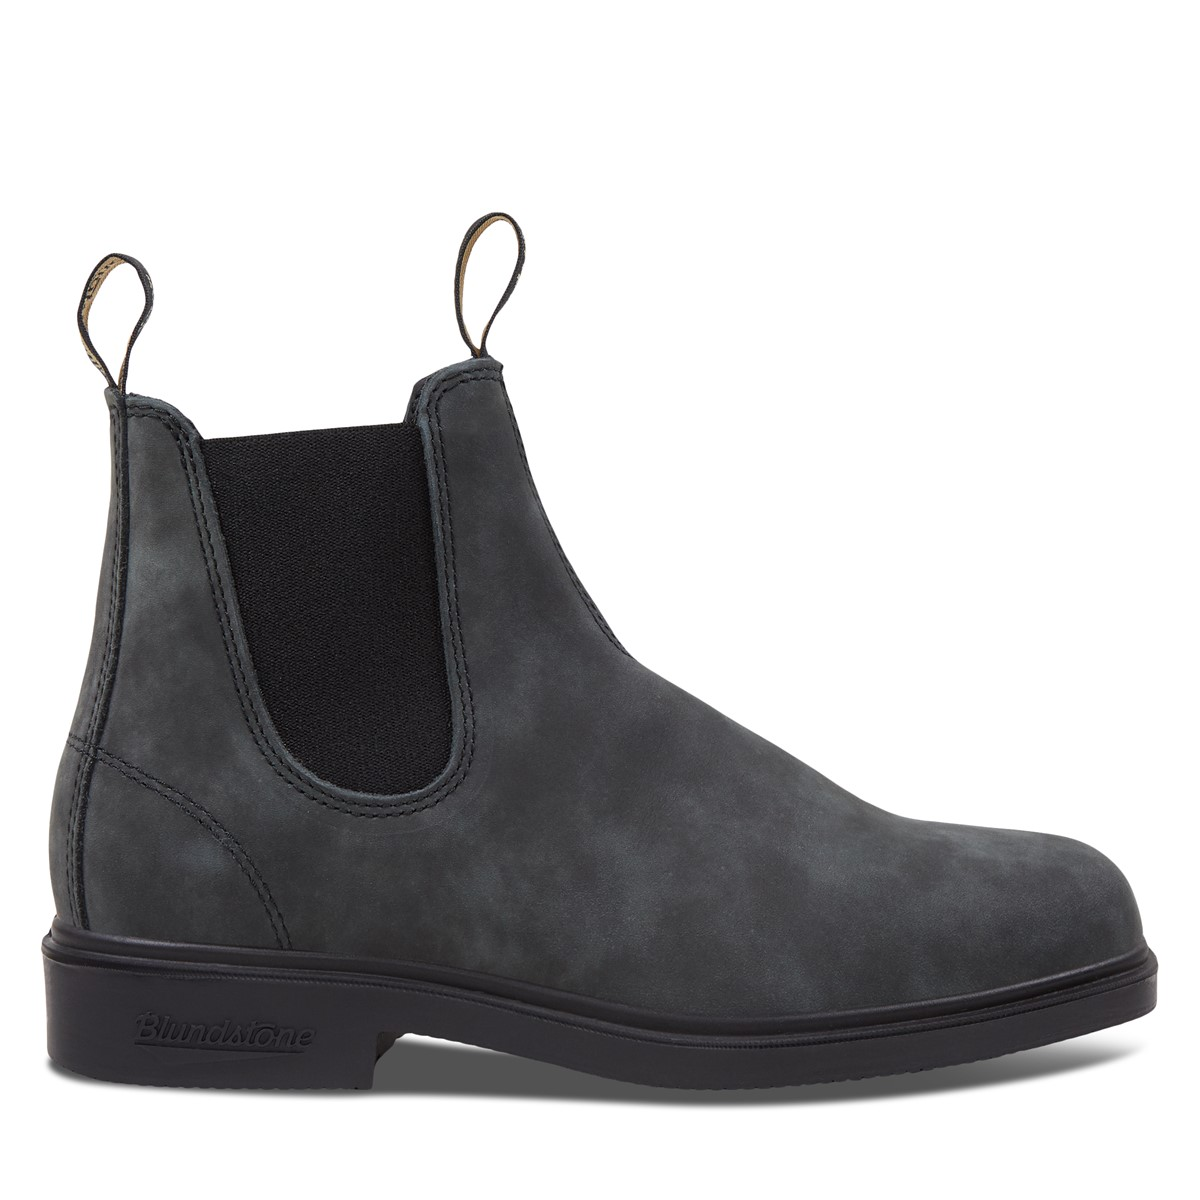 1308 Chisel Toe Chelsea Boots in Rustic Black